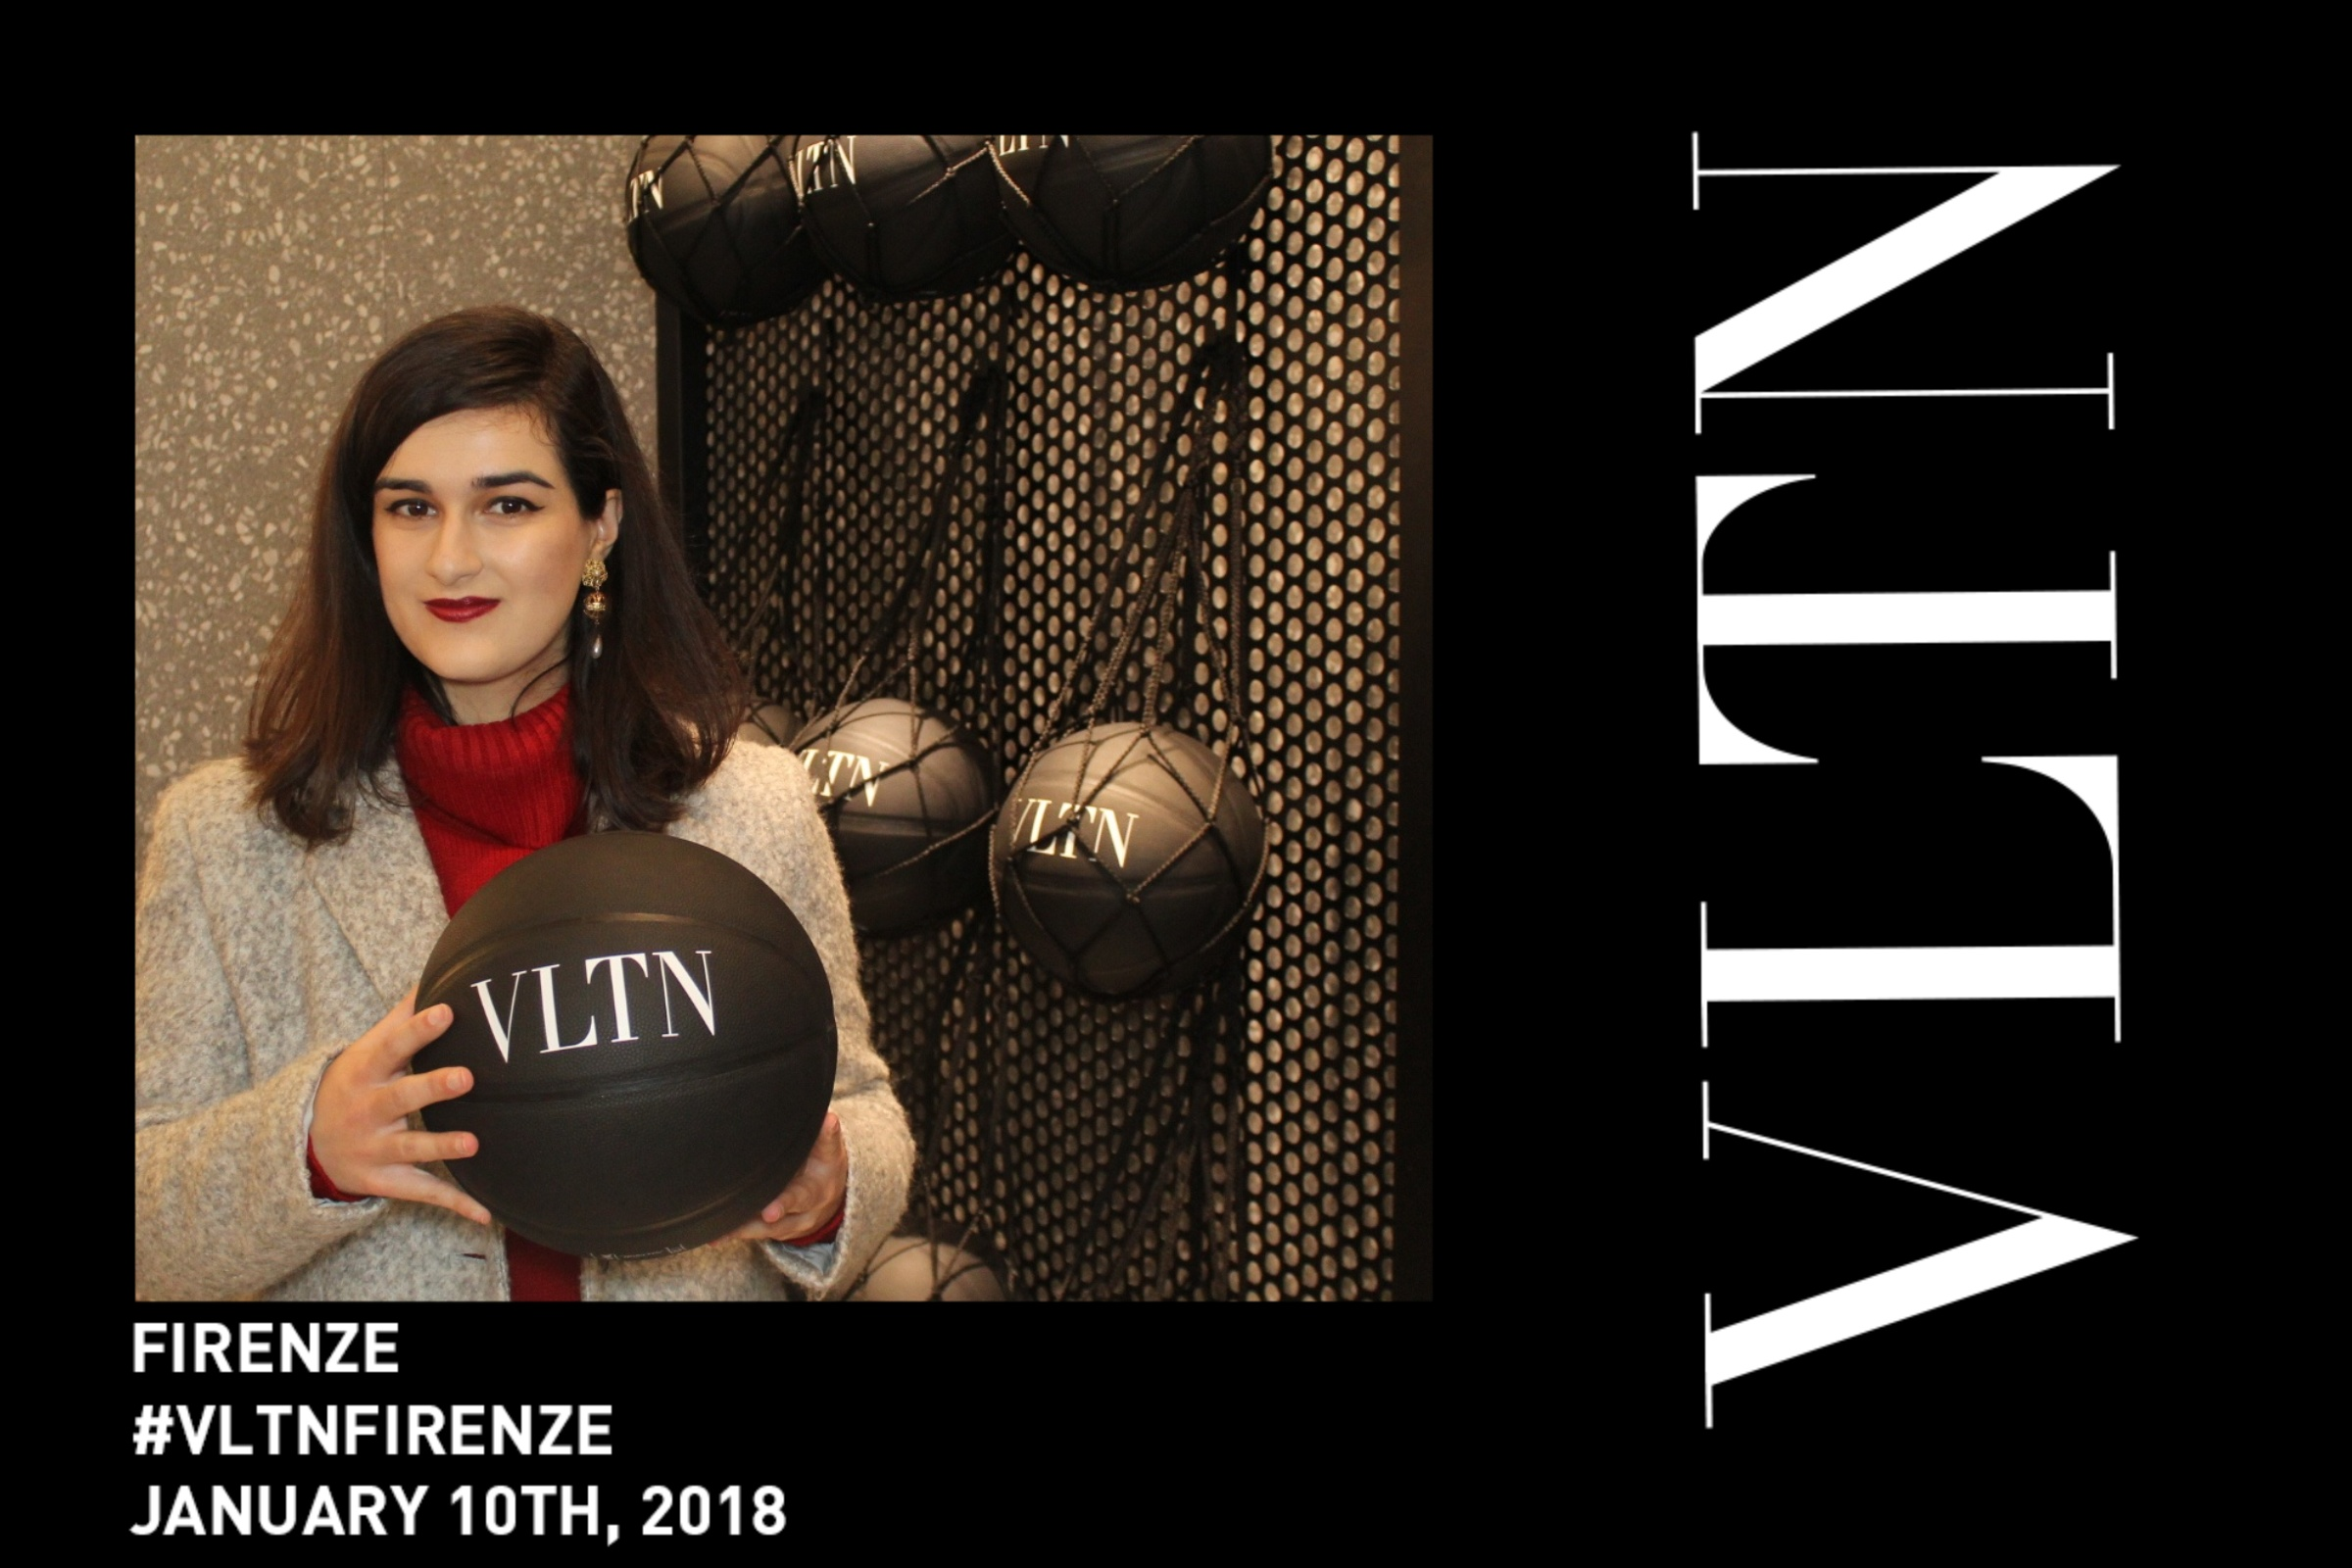 somethingfashion blogger firenze Valentino #vltn PittiUomo events cocktails Replay Replayrocksfirenze BottegaQuatro